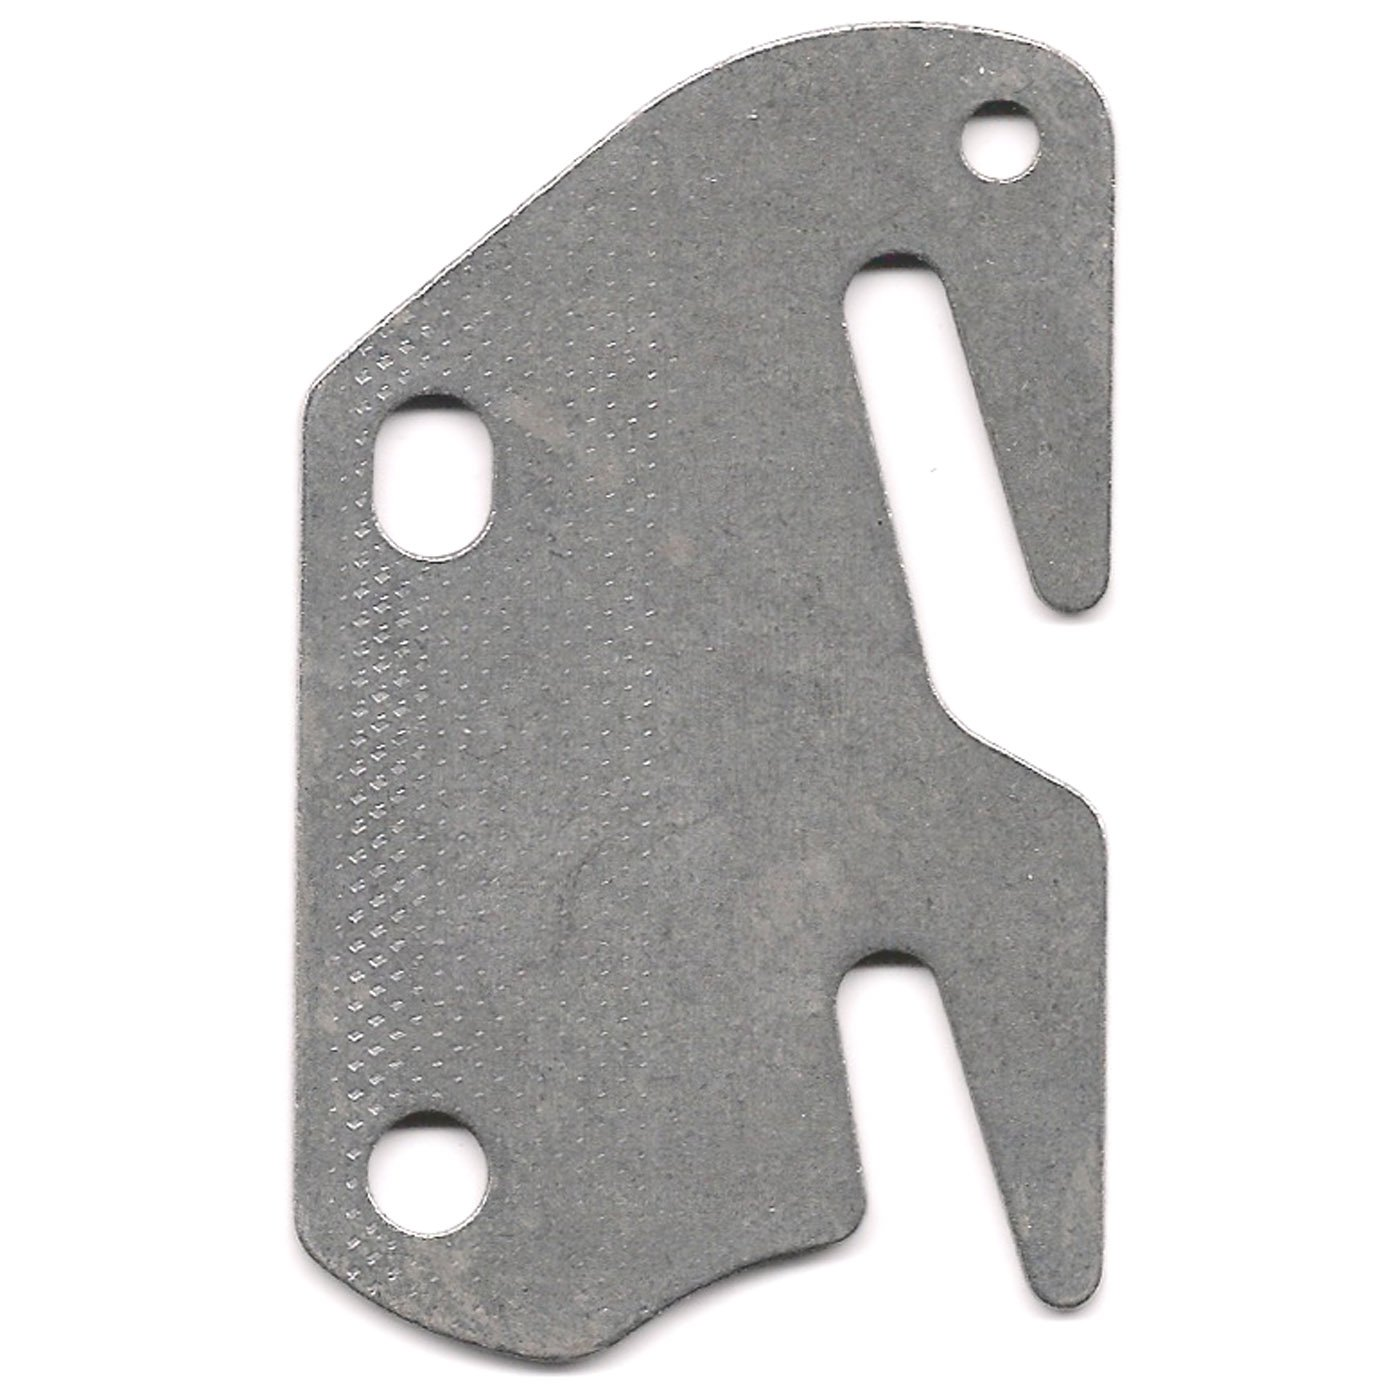 Bed Rail Double Hook Slot Plate Fits 2 Quot Bracket Or Bed